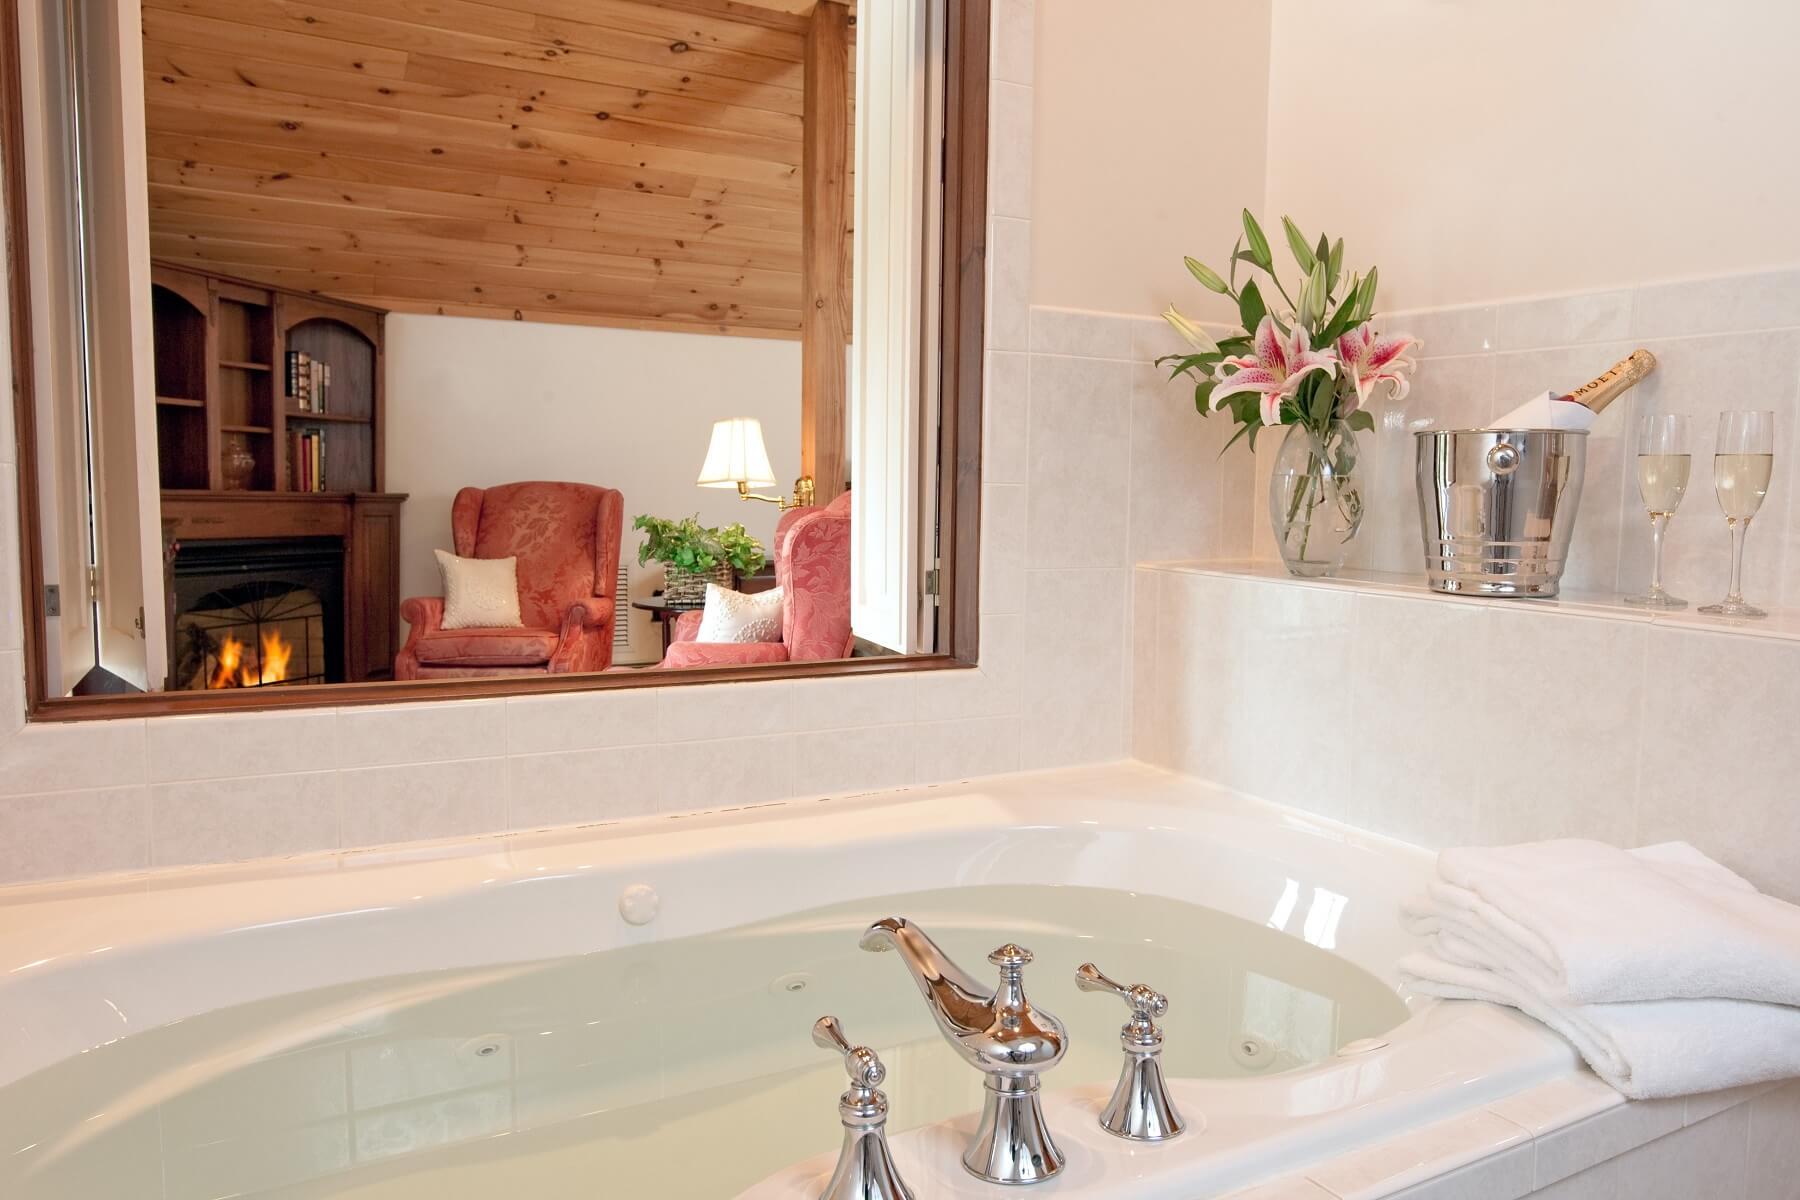 Sarah Master Suite bathroom at Stonecroft Country Inn